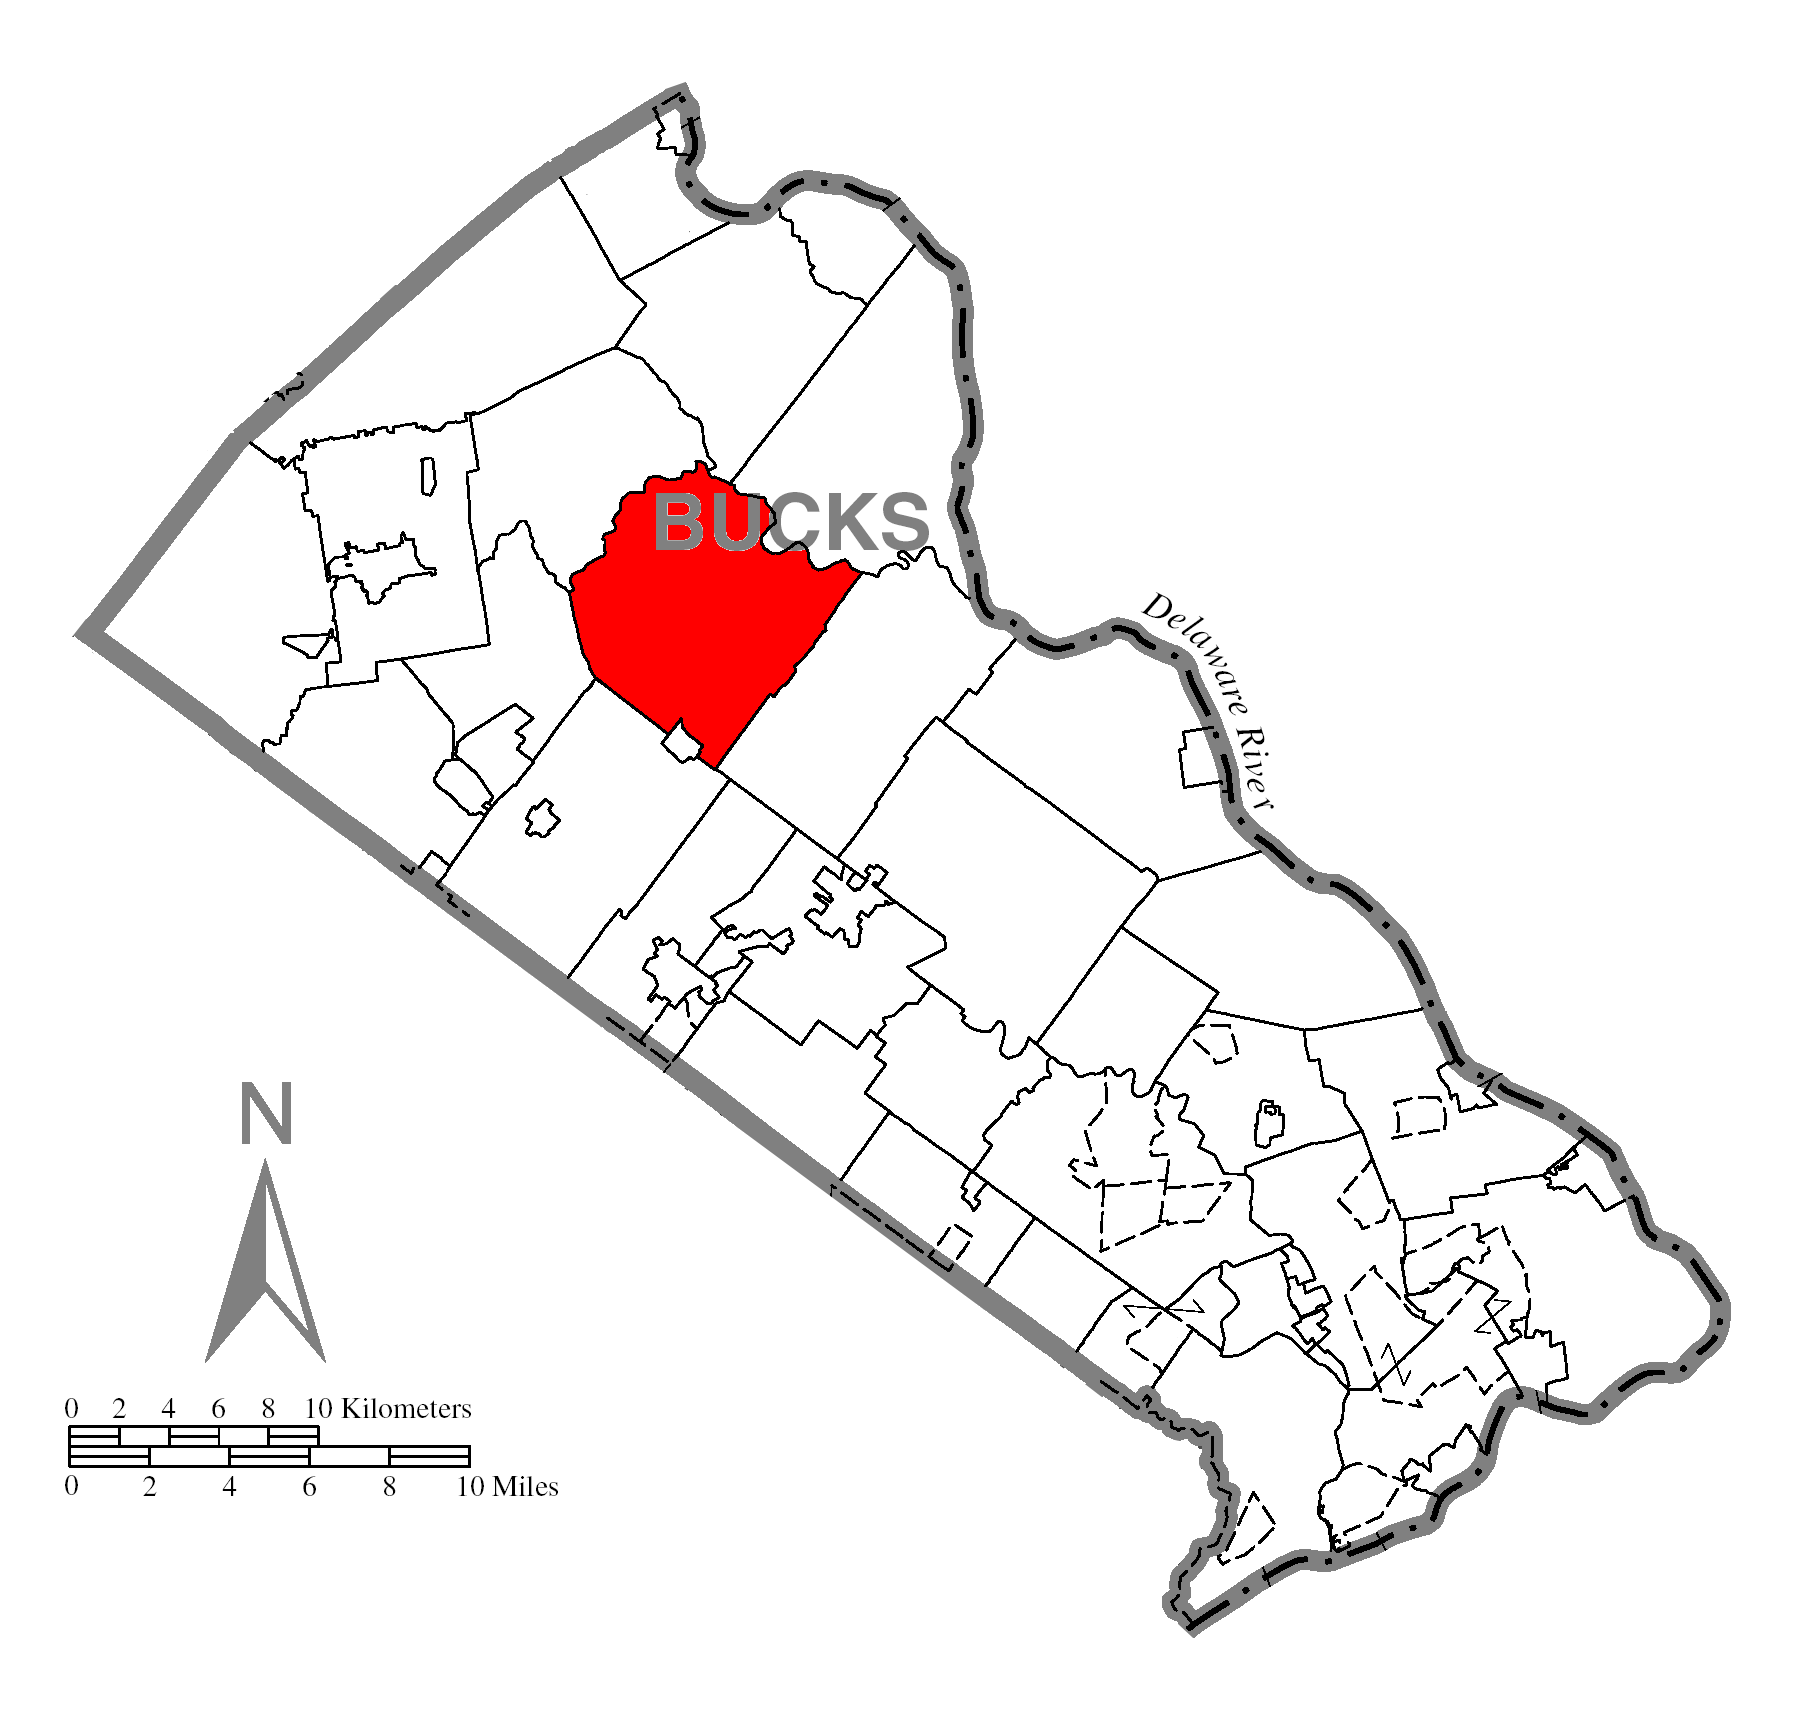 File:Map Of Bedminster Township, Bucks County